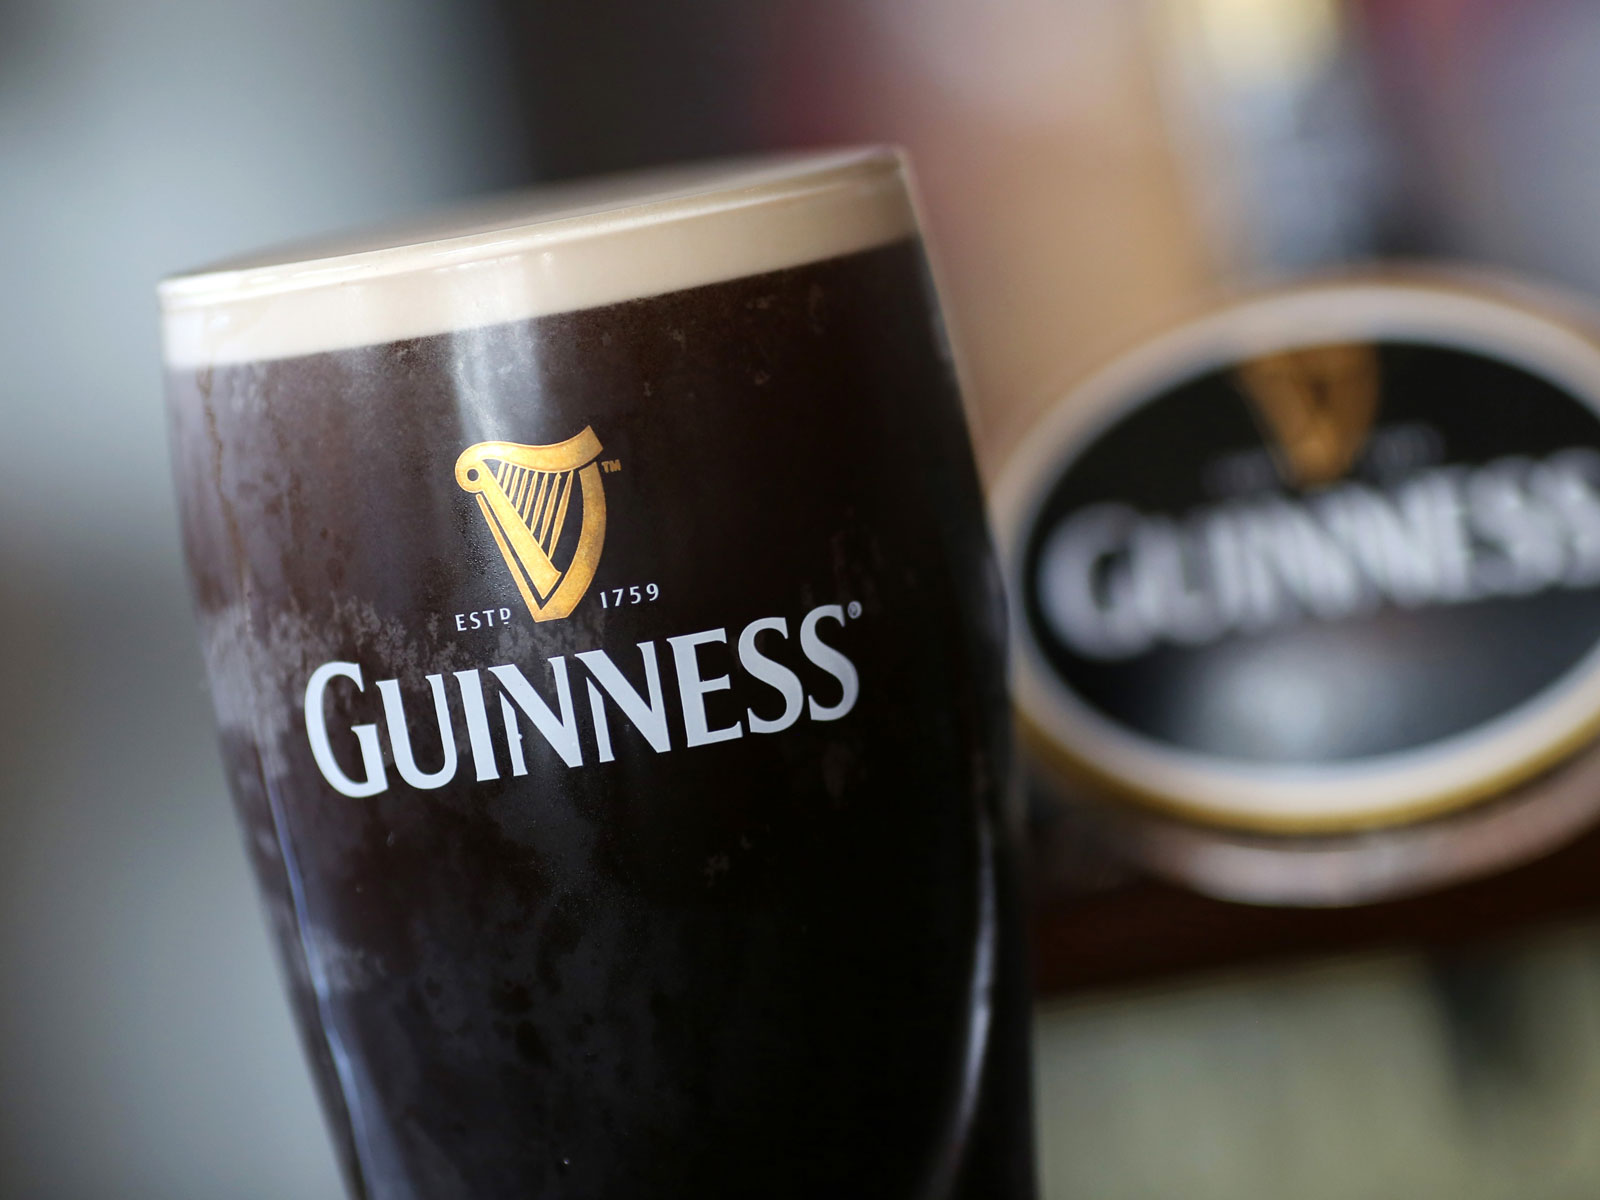 100-year-old-woman-guinness-FT-BLOG0518.jpg